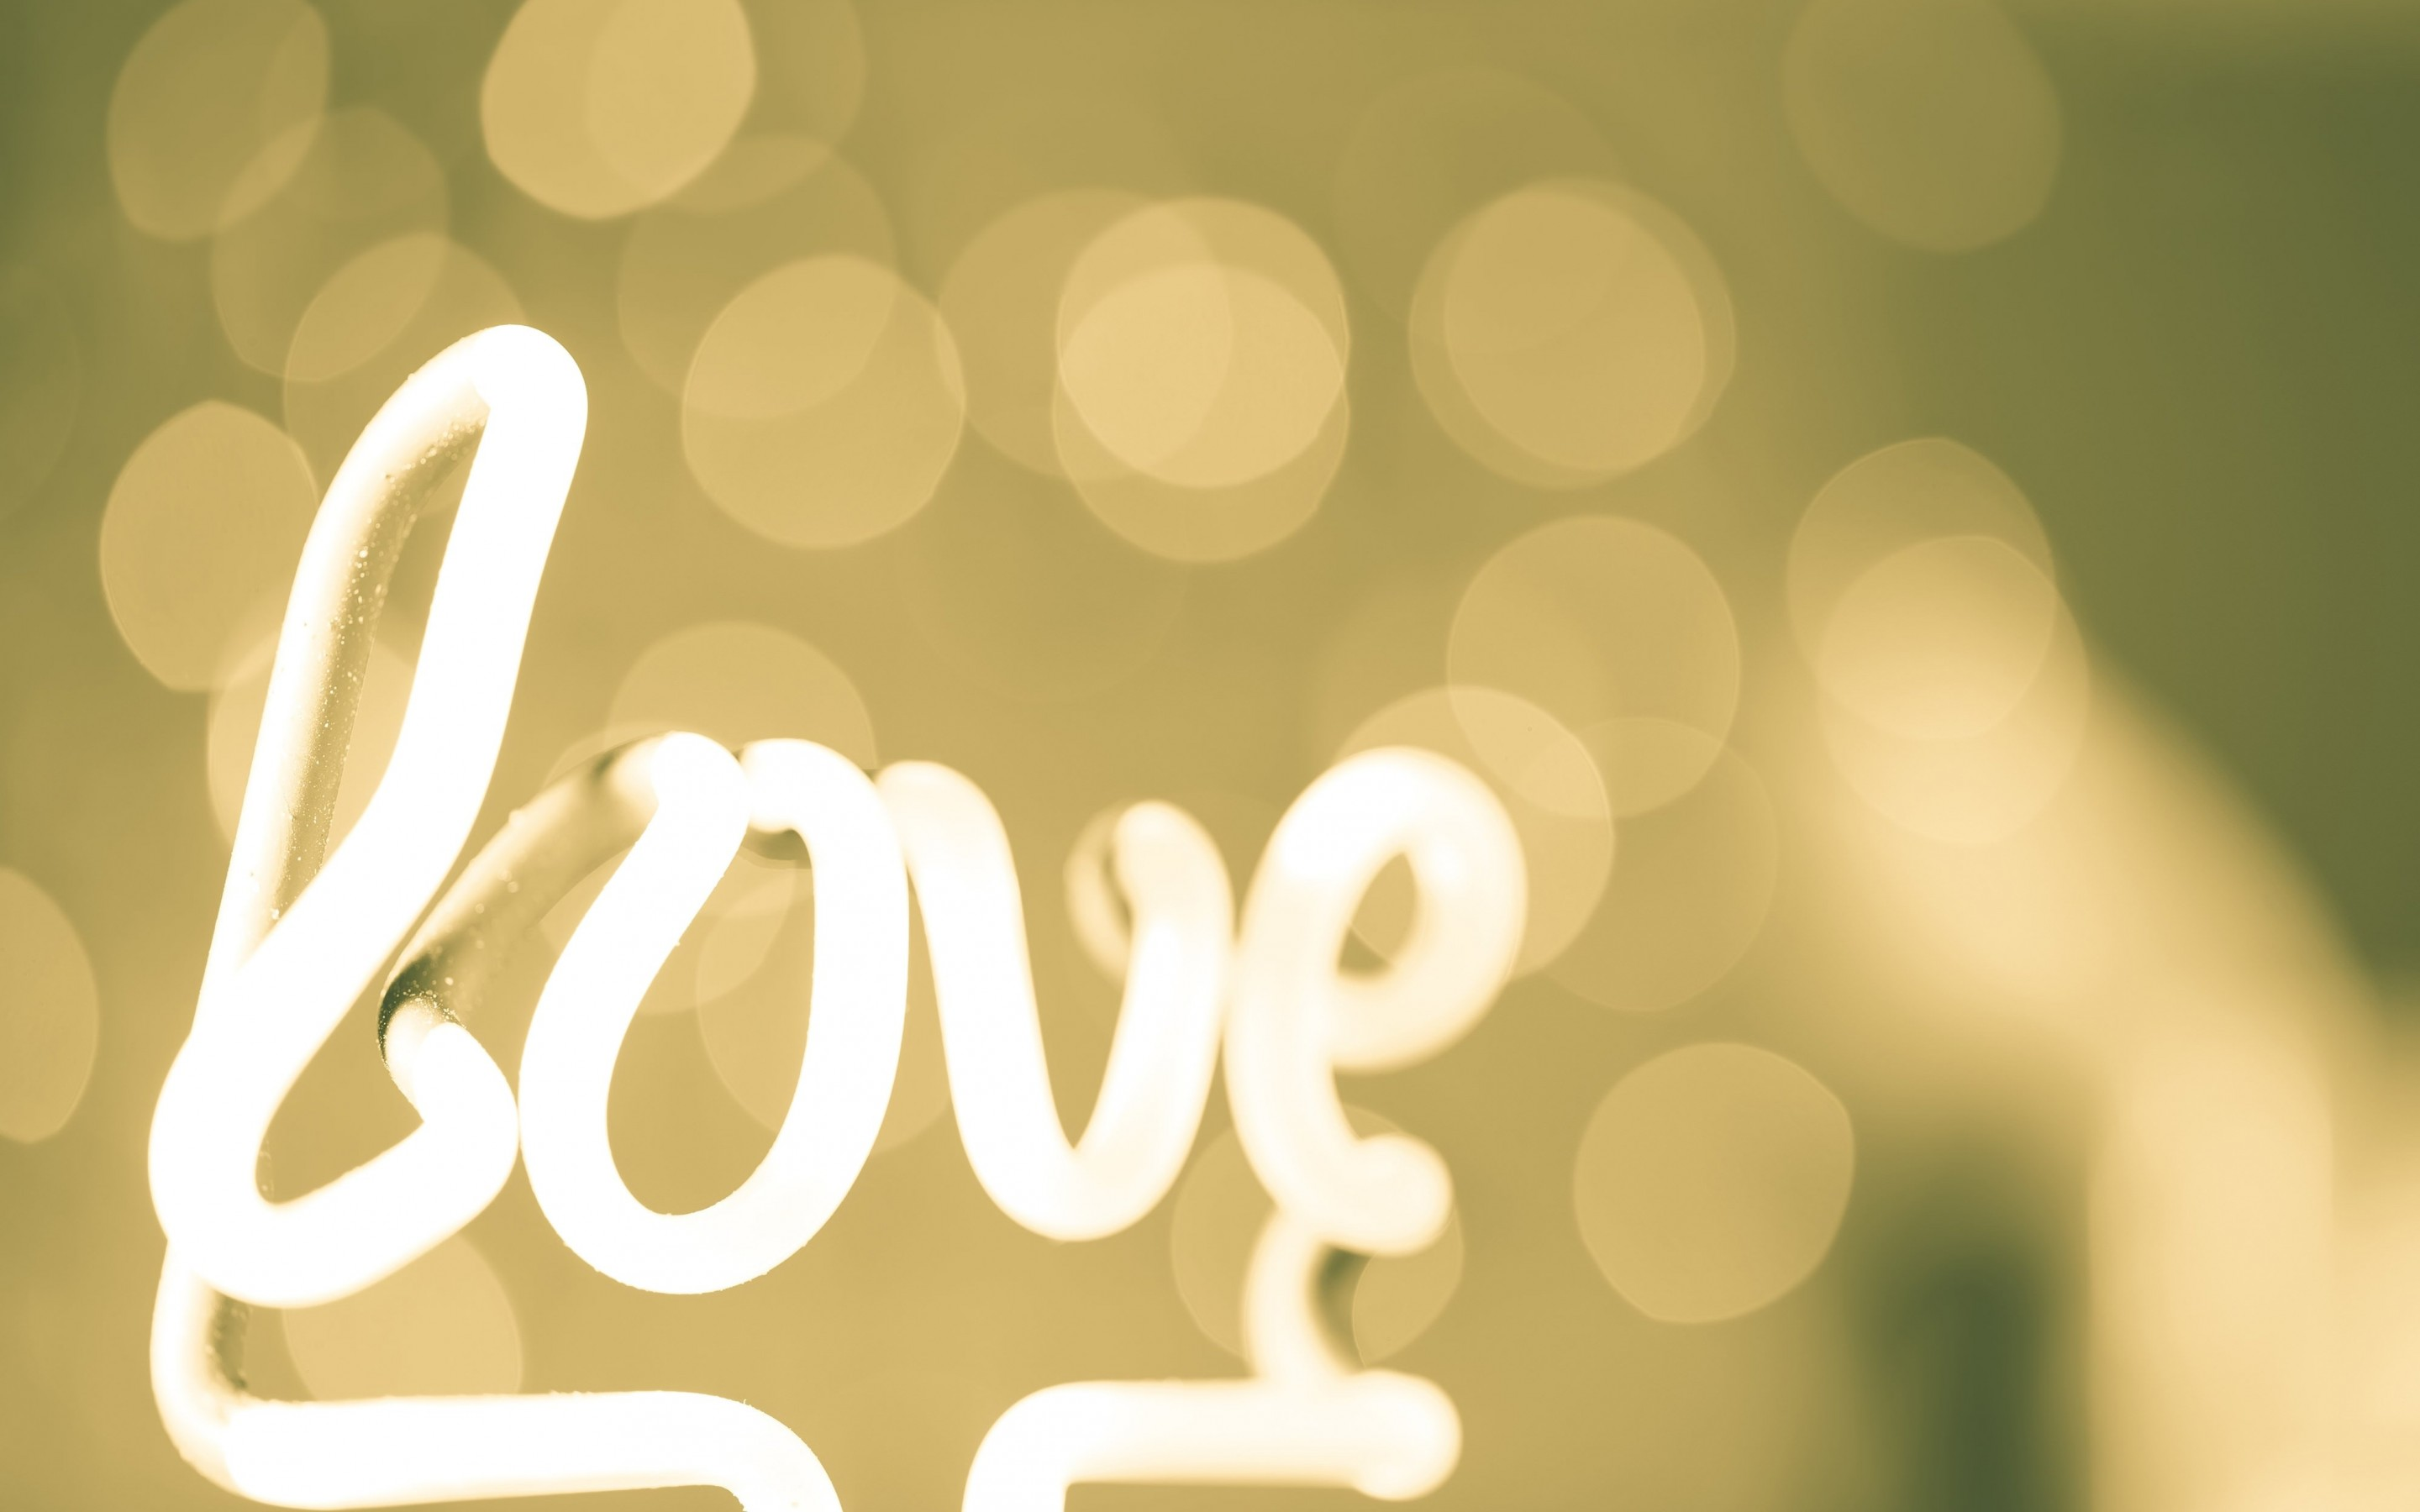 Love Neon Light Typography Wallpaper for Desktop 2880x1800